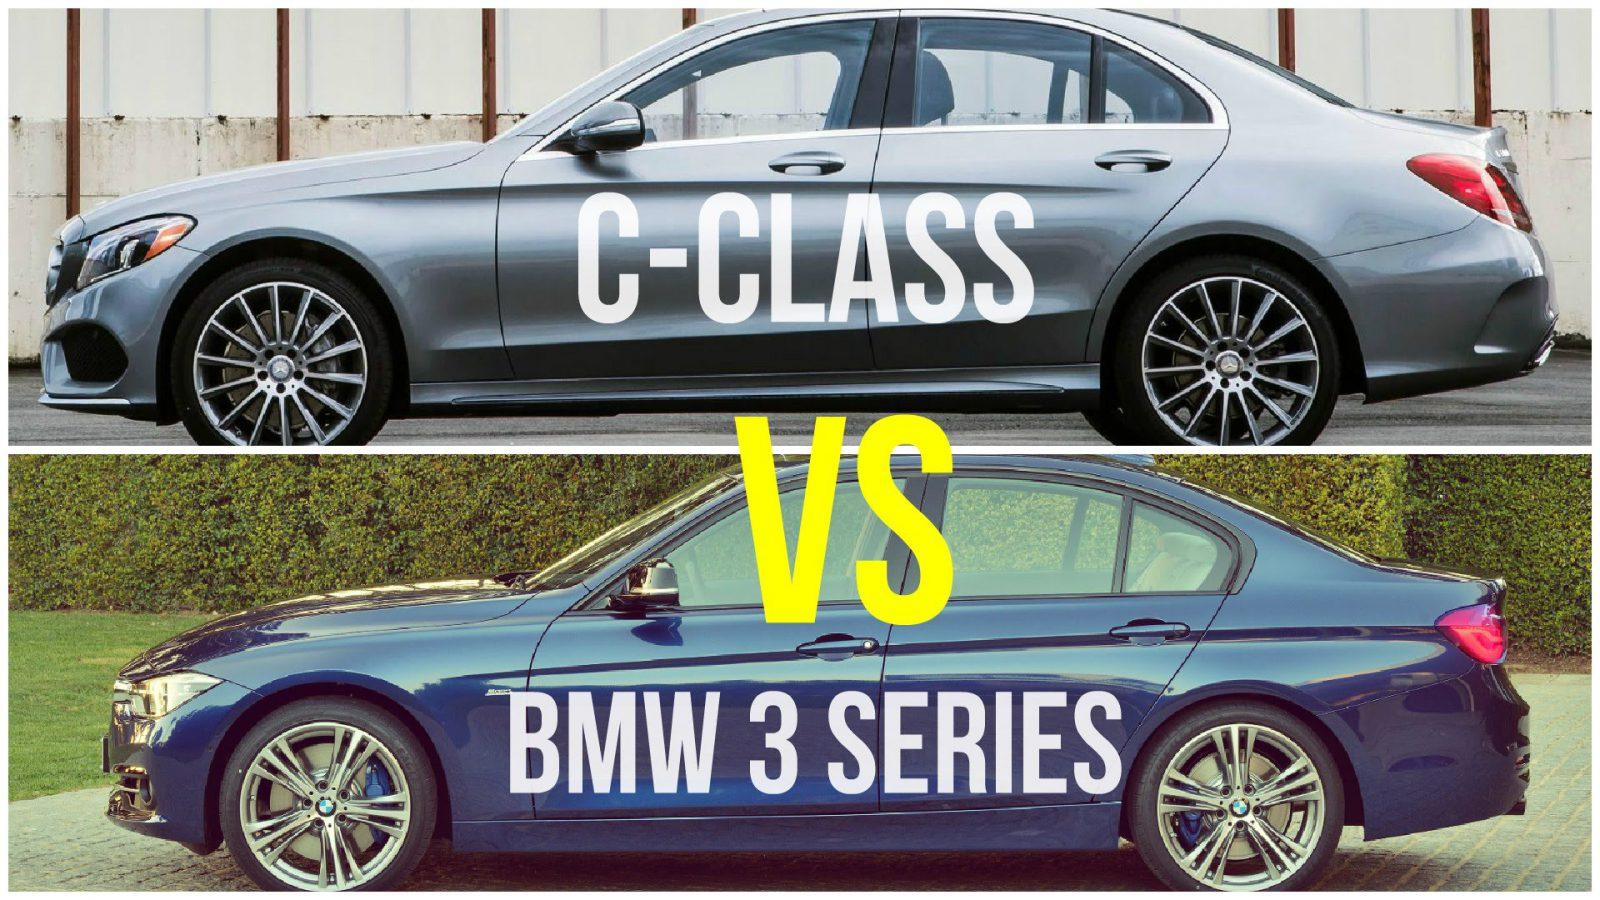 3 Points to Decide the Winner of BMW 3 Series vs Mercedes C